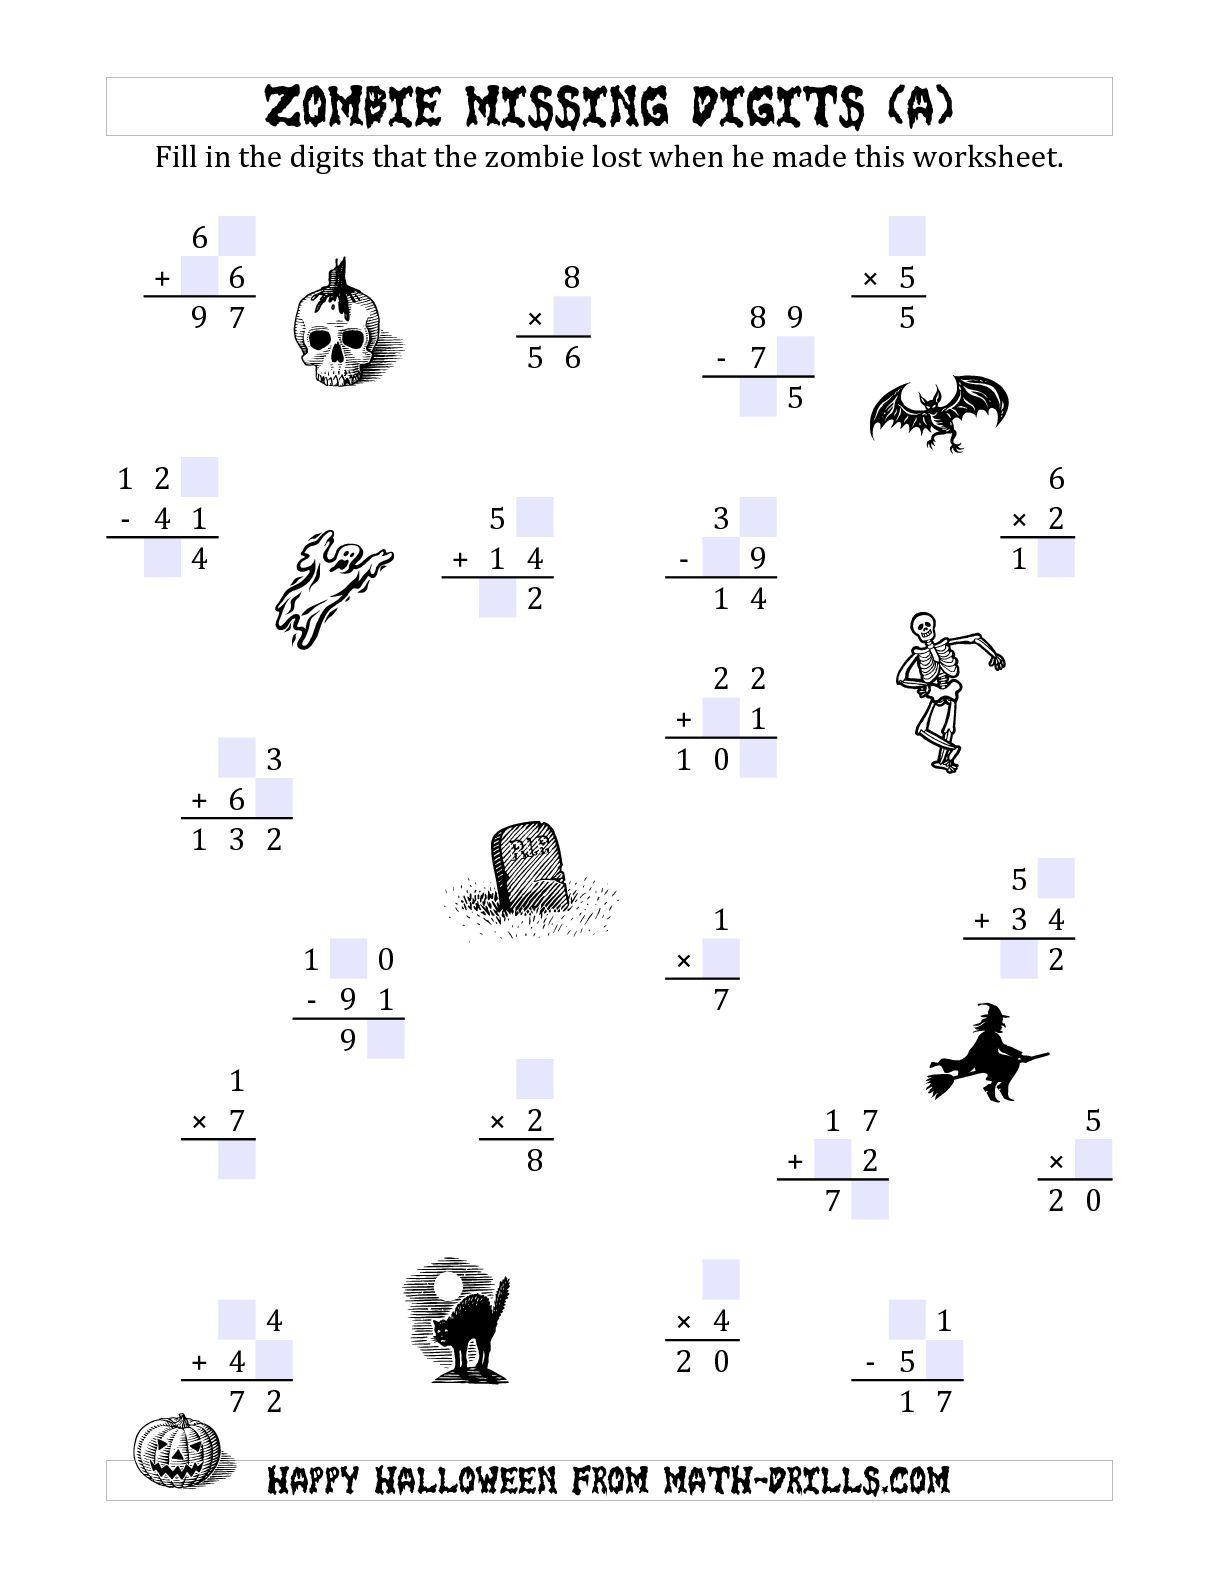 The Zombie Missing Digits A Math Worksheet From The Halloween Math Worksheets Page At Math